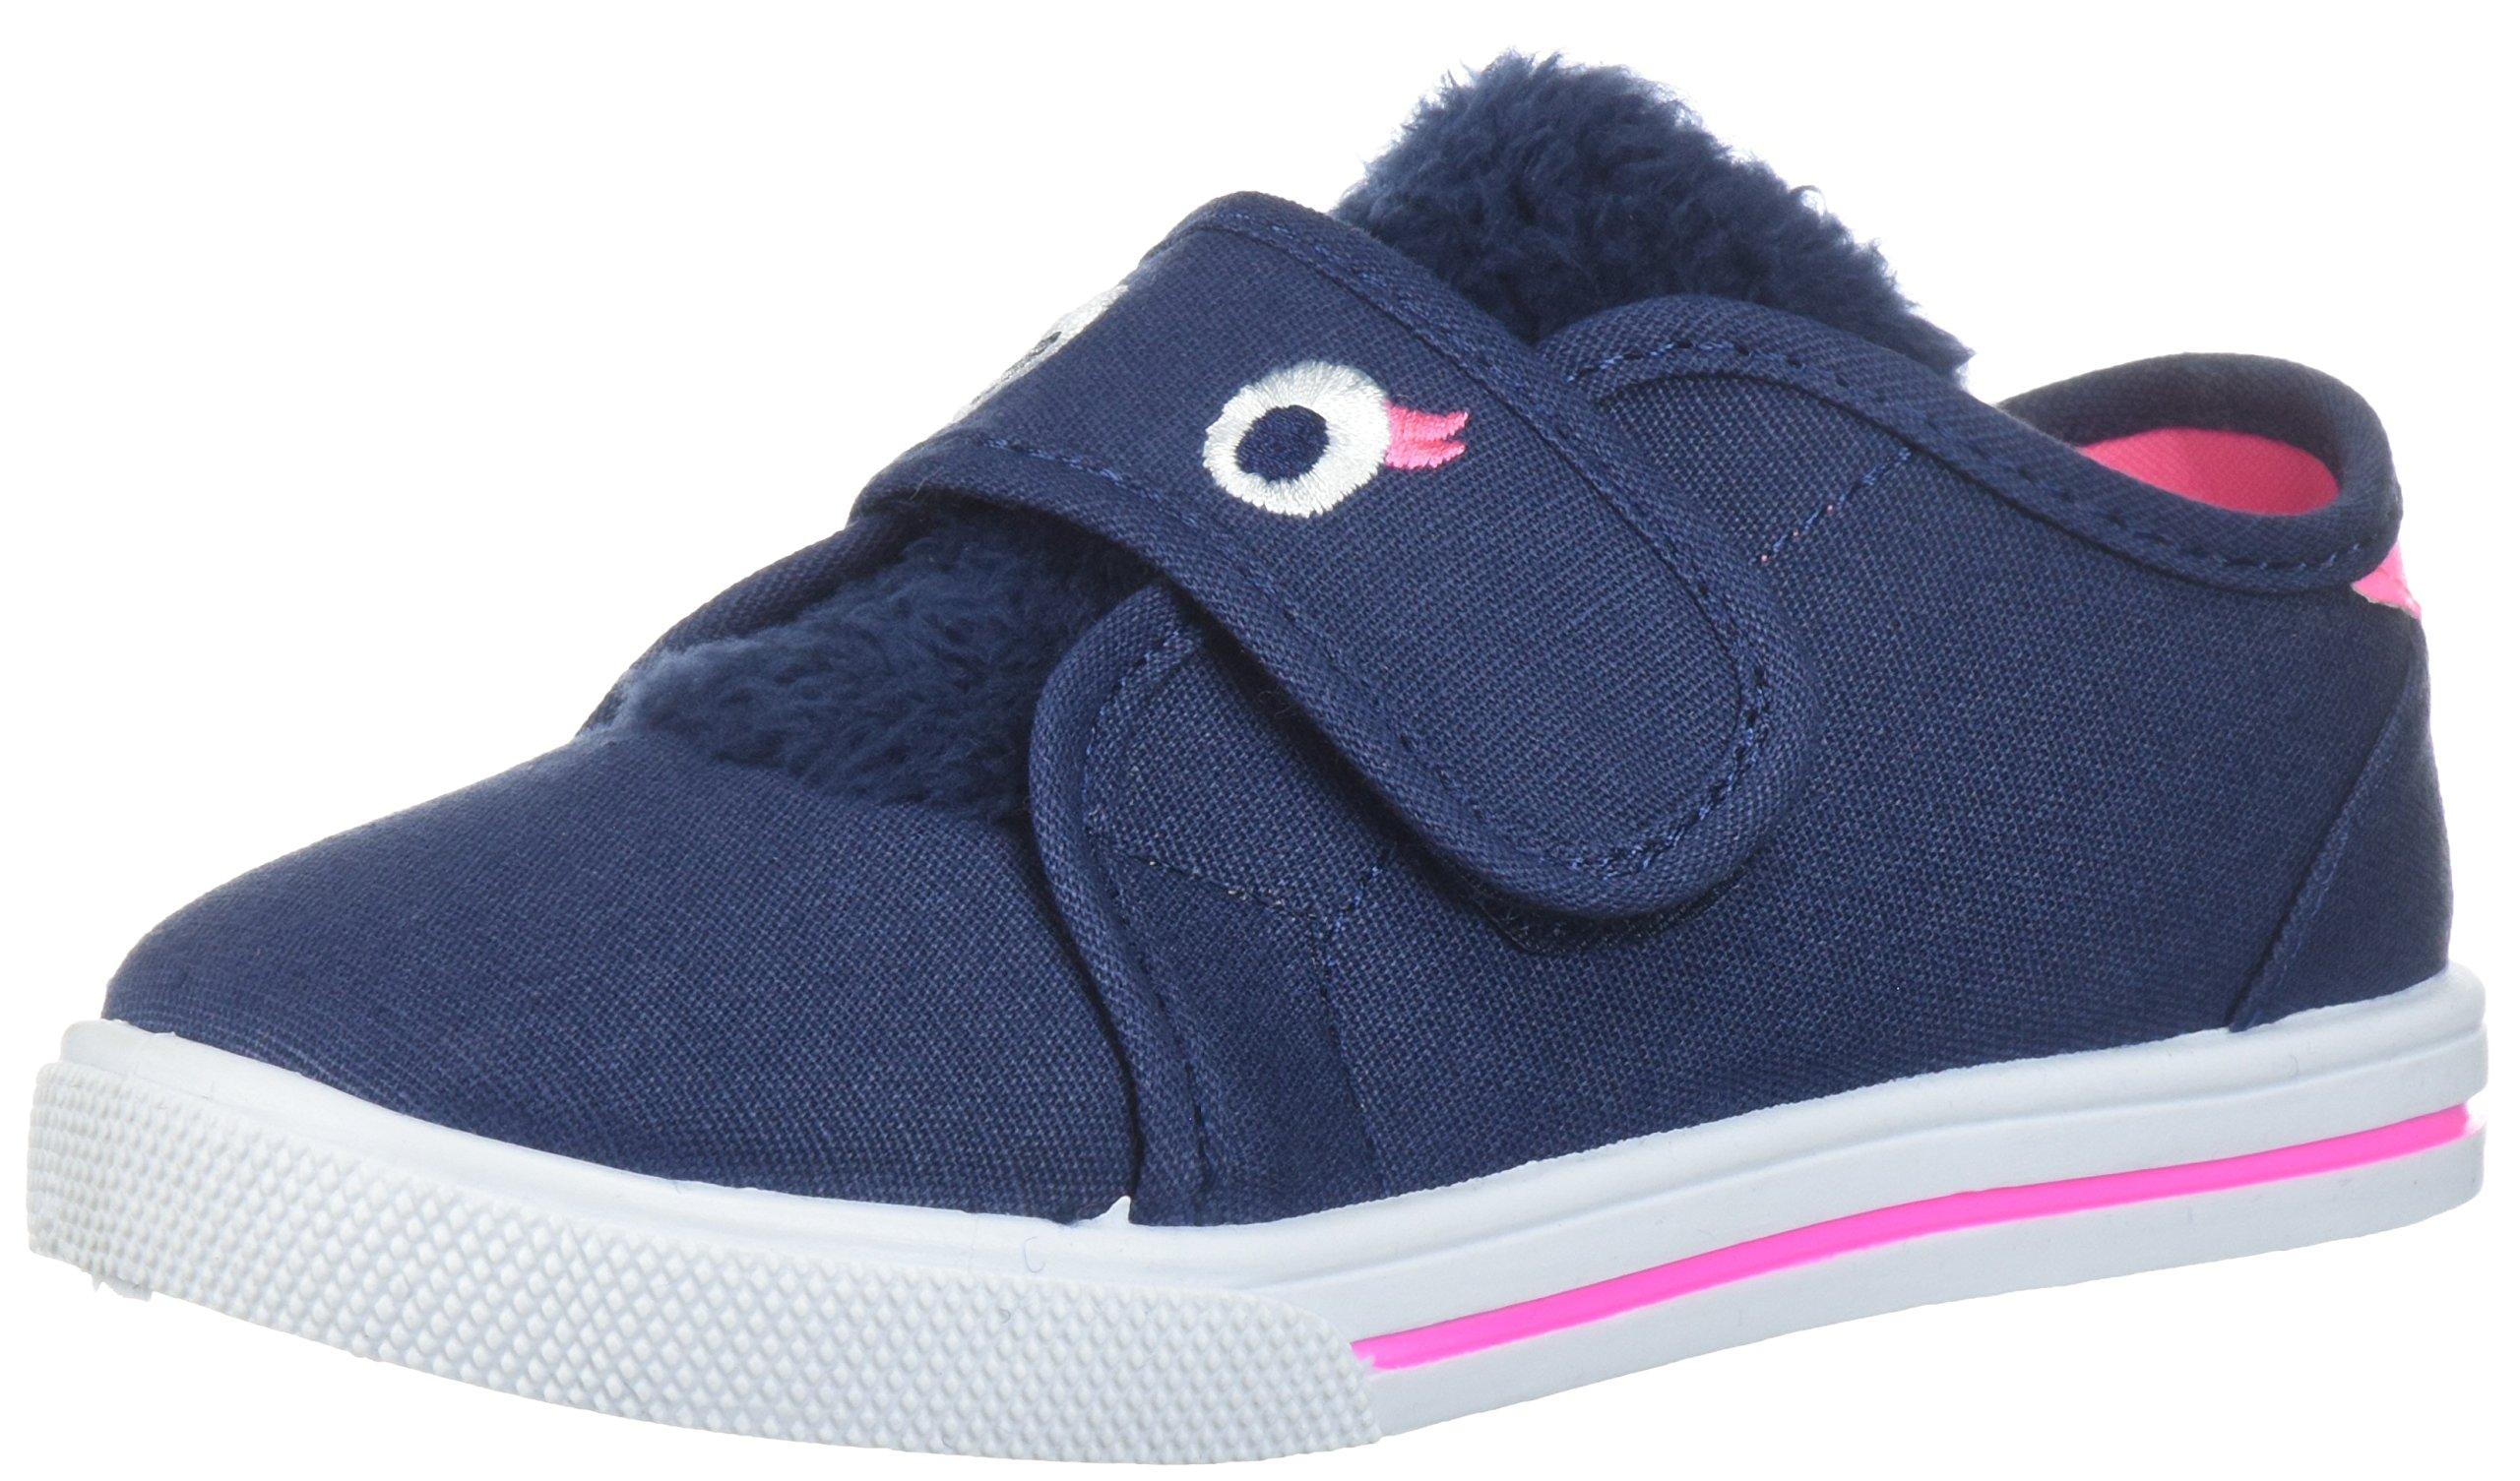 Carter's Unisex-Kids Arya Boy's and Girl's Novelty Slip-on Sneaker, Navy_410, 11 M US Little Kid